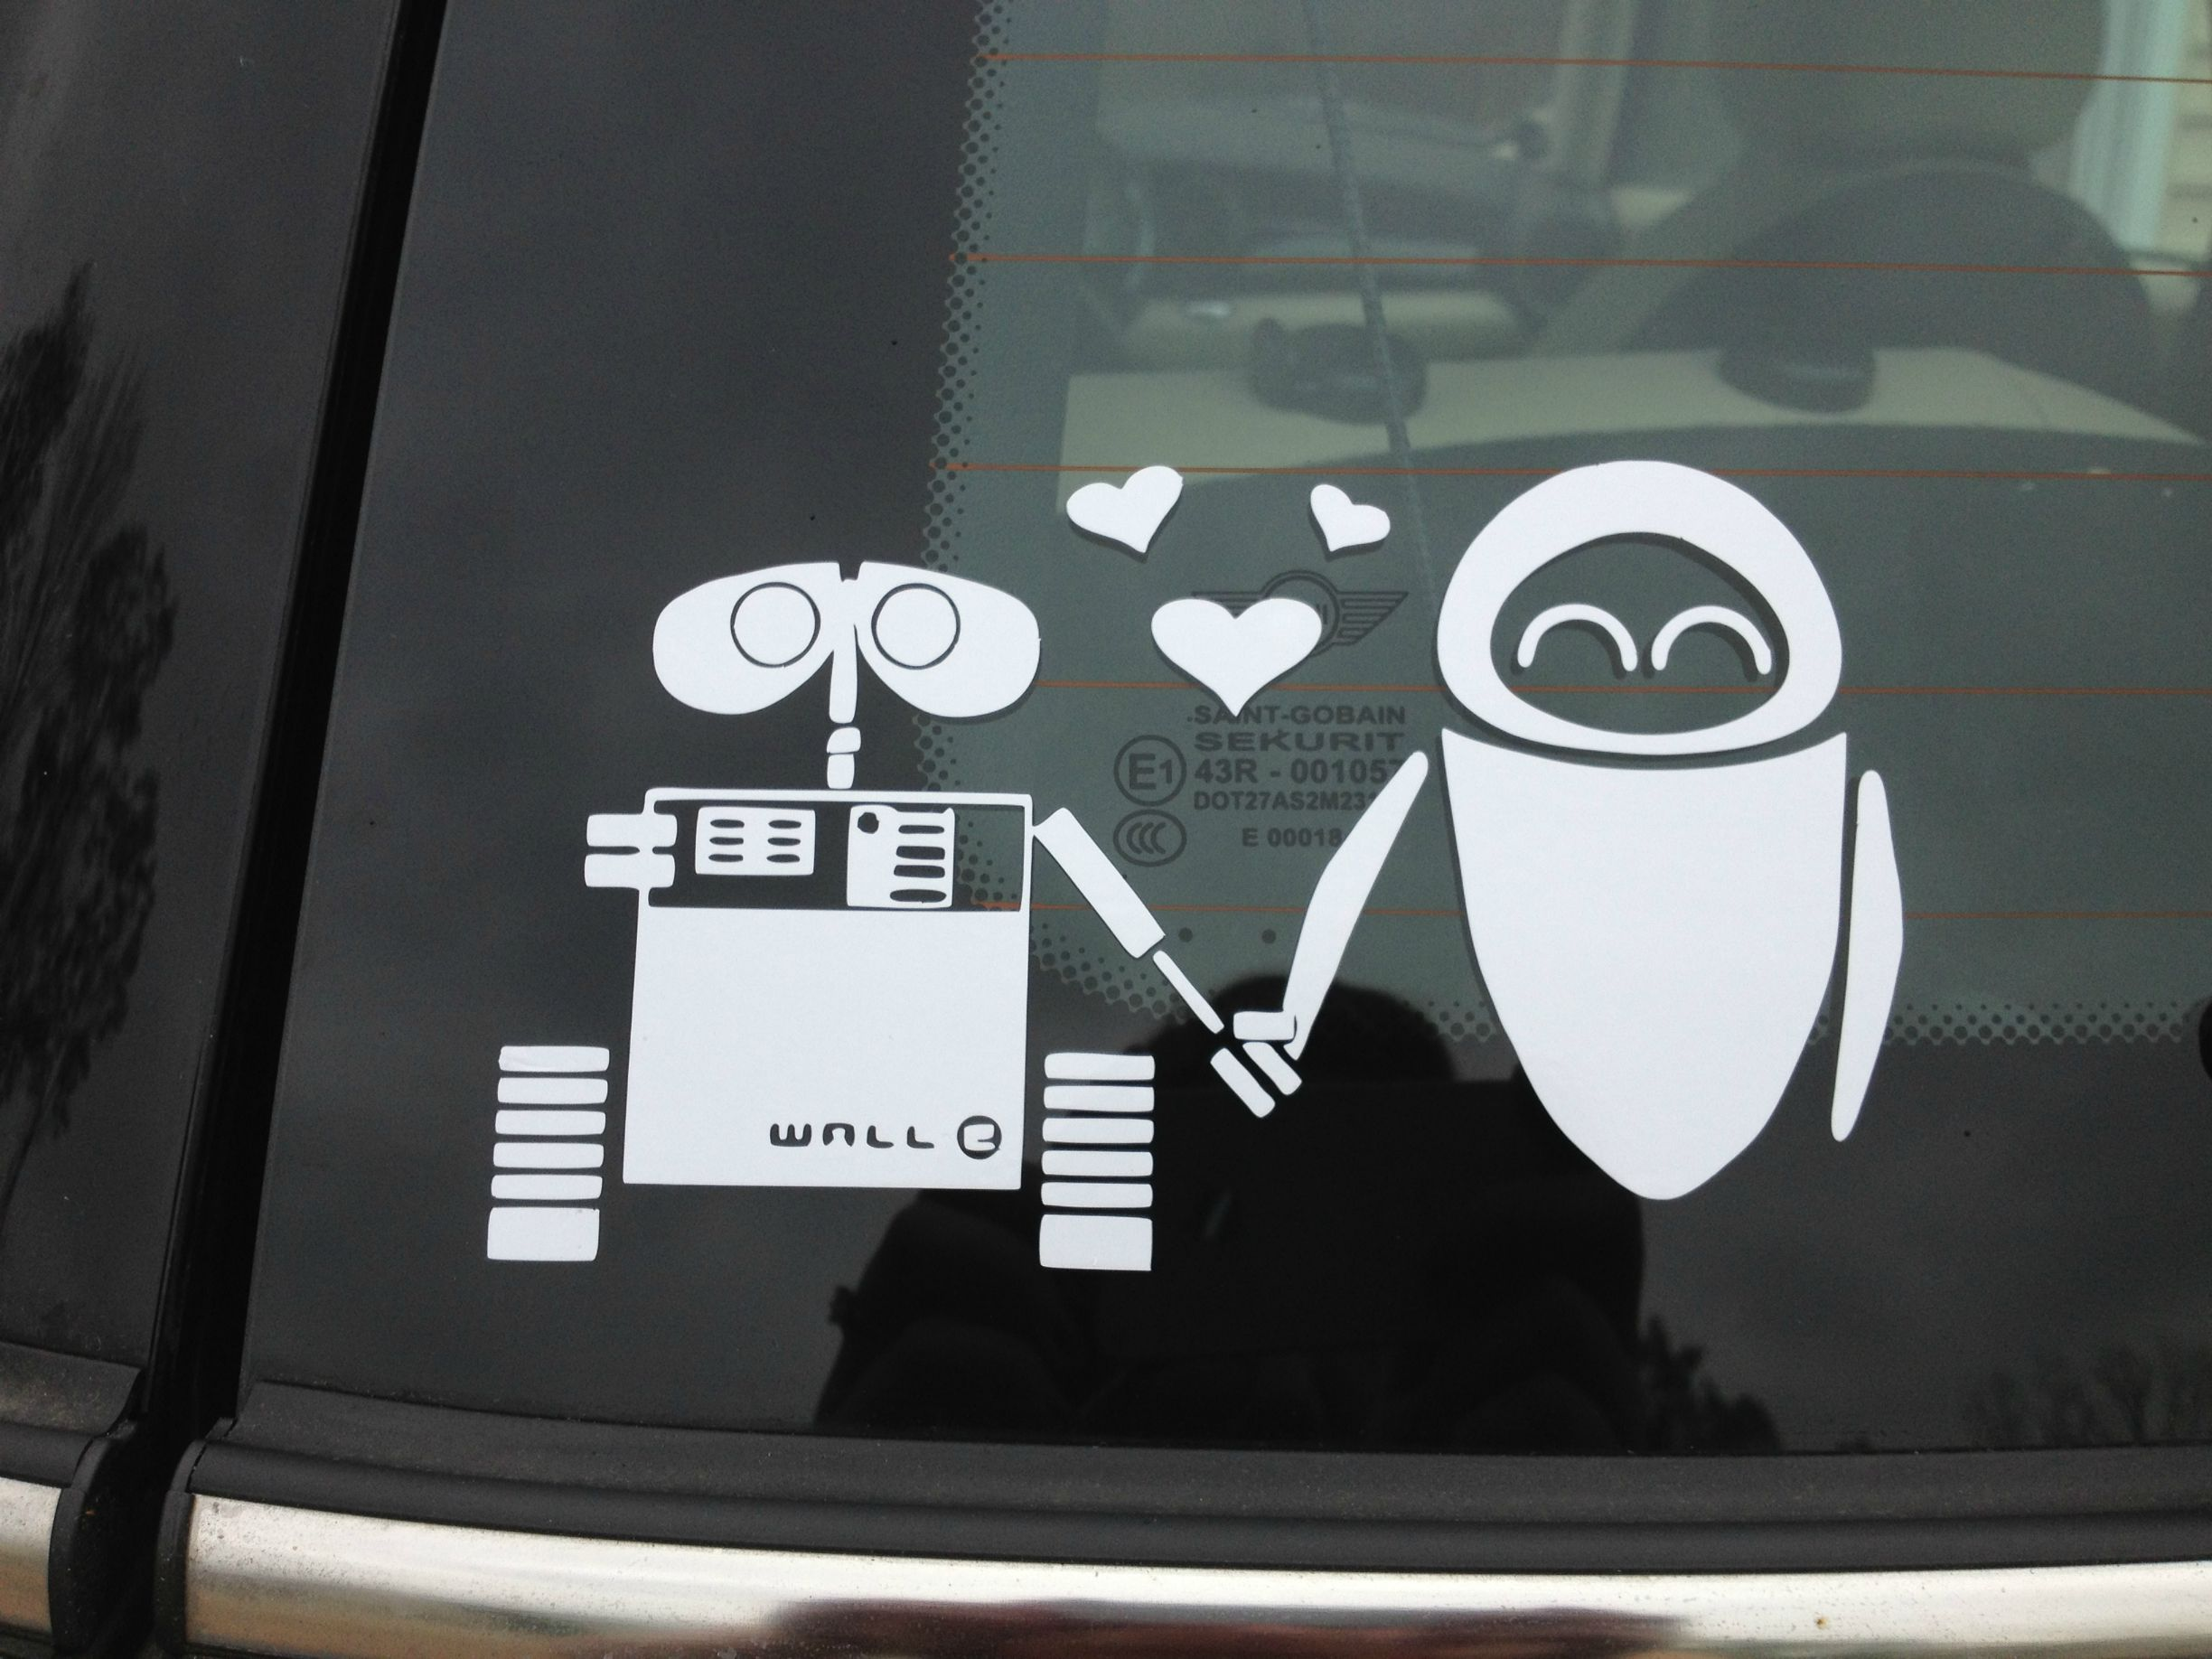 Car sticker design pinterest - Some Families Have Stick Figure Decals On Their Cars My Husband And I Have This